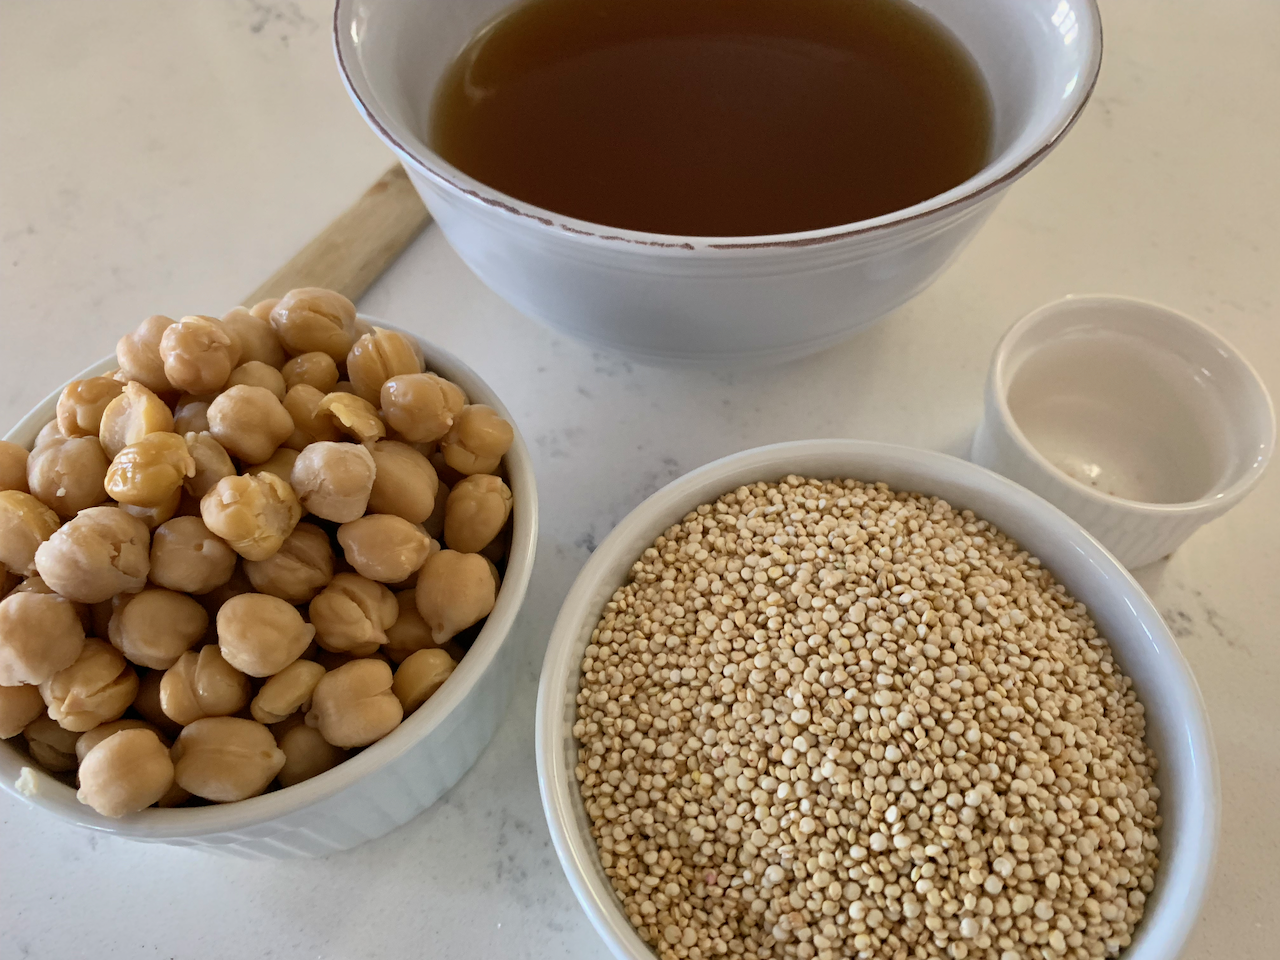 Chickpeas, quinoa & vegetable broth… flavorful, gluten free / low carb base for so many meal ideas!